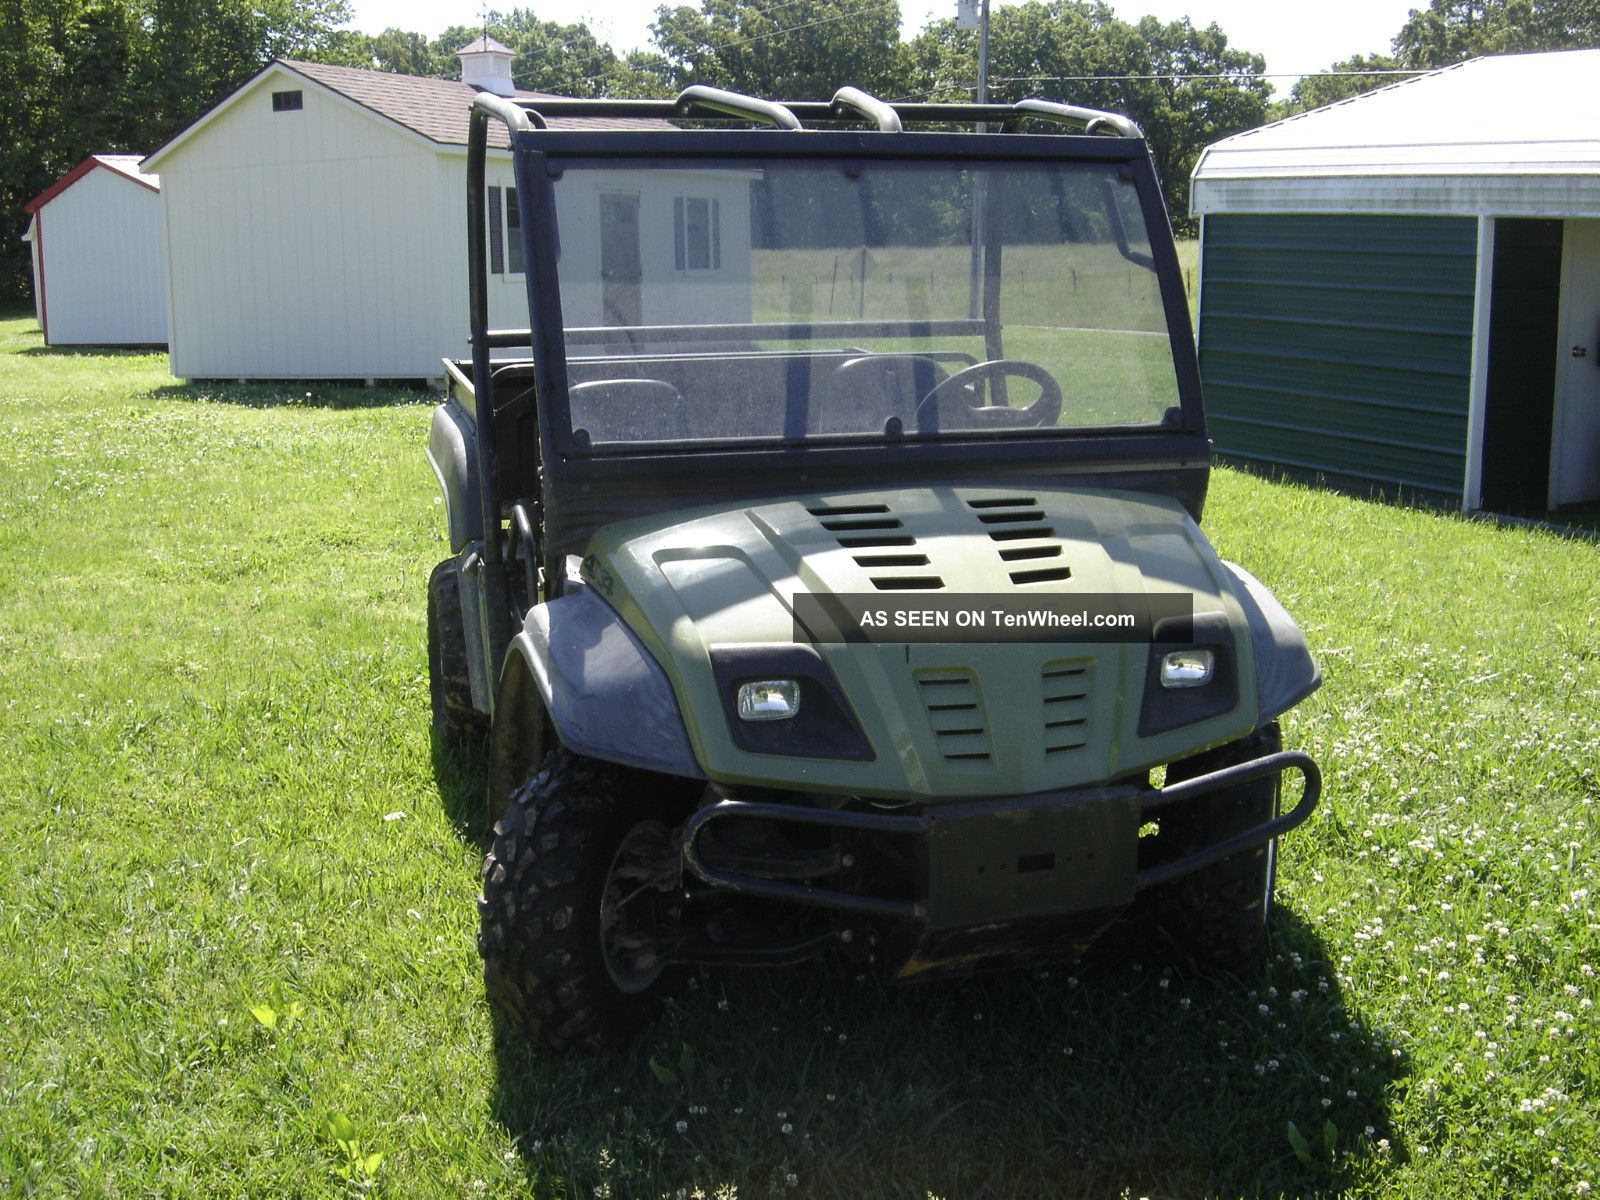 2010 Cub Cadet 37am465d710 UTVs photo